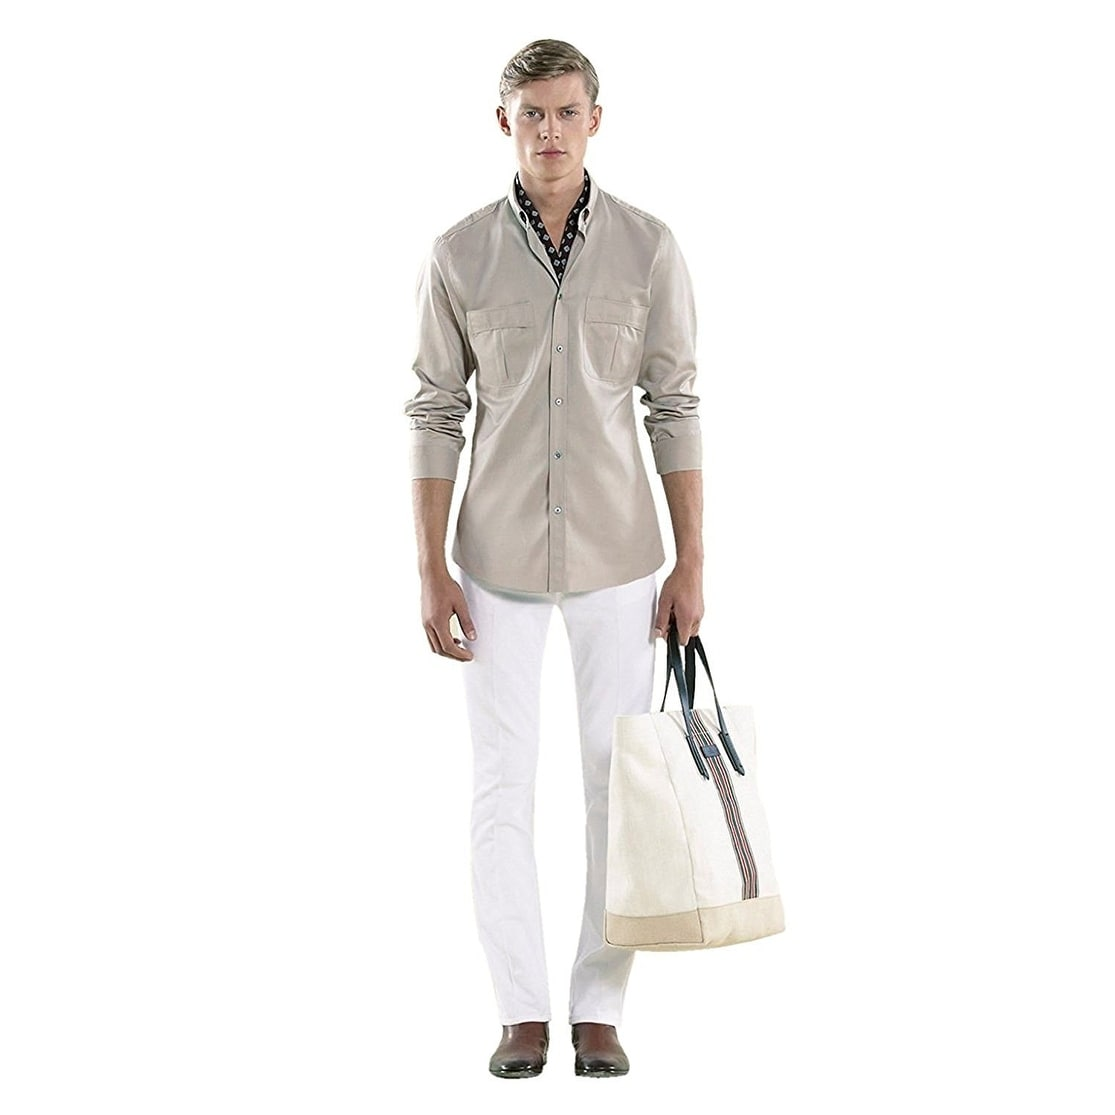 422df9b5d45a Shop Gucci Men's White Canvas Large Web Tall Tote Bag 308836 - Free  Shipping Today - Overstock - 27603183